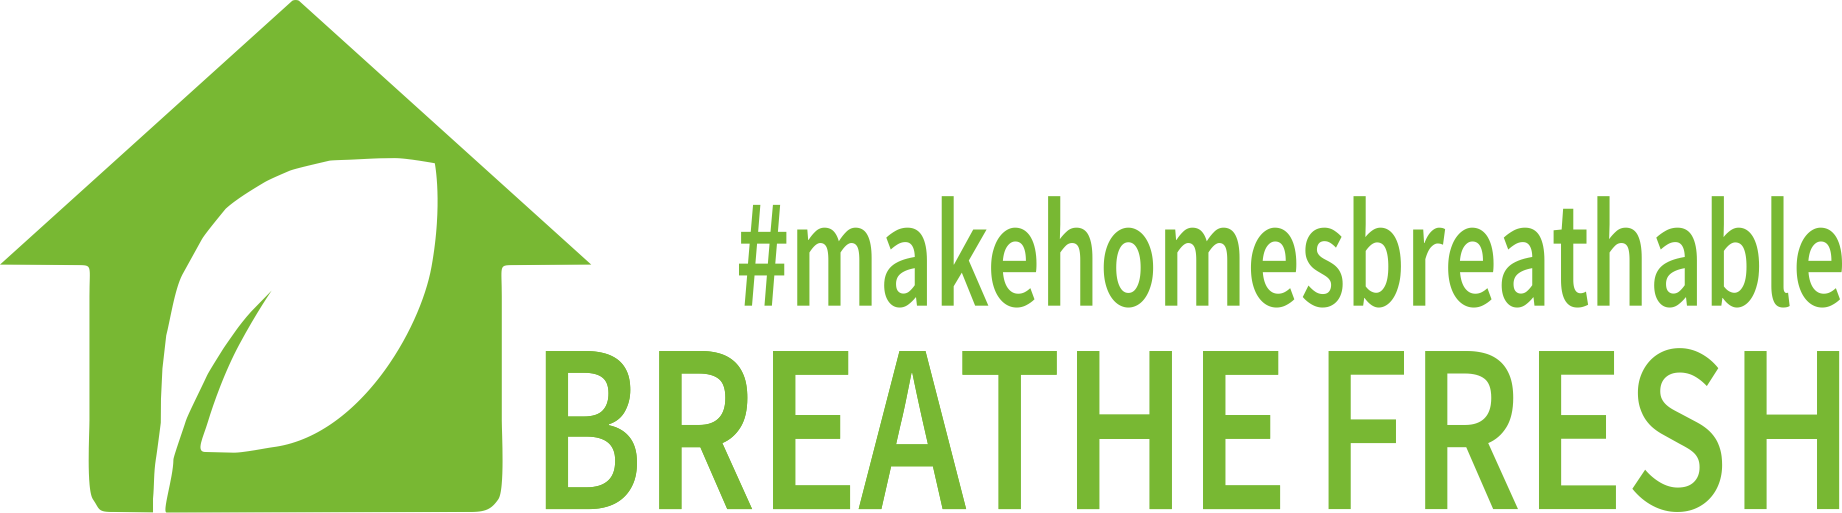 Breathe Fresh - Healthy Breathable Homes